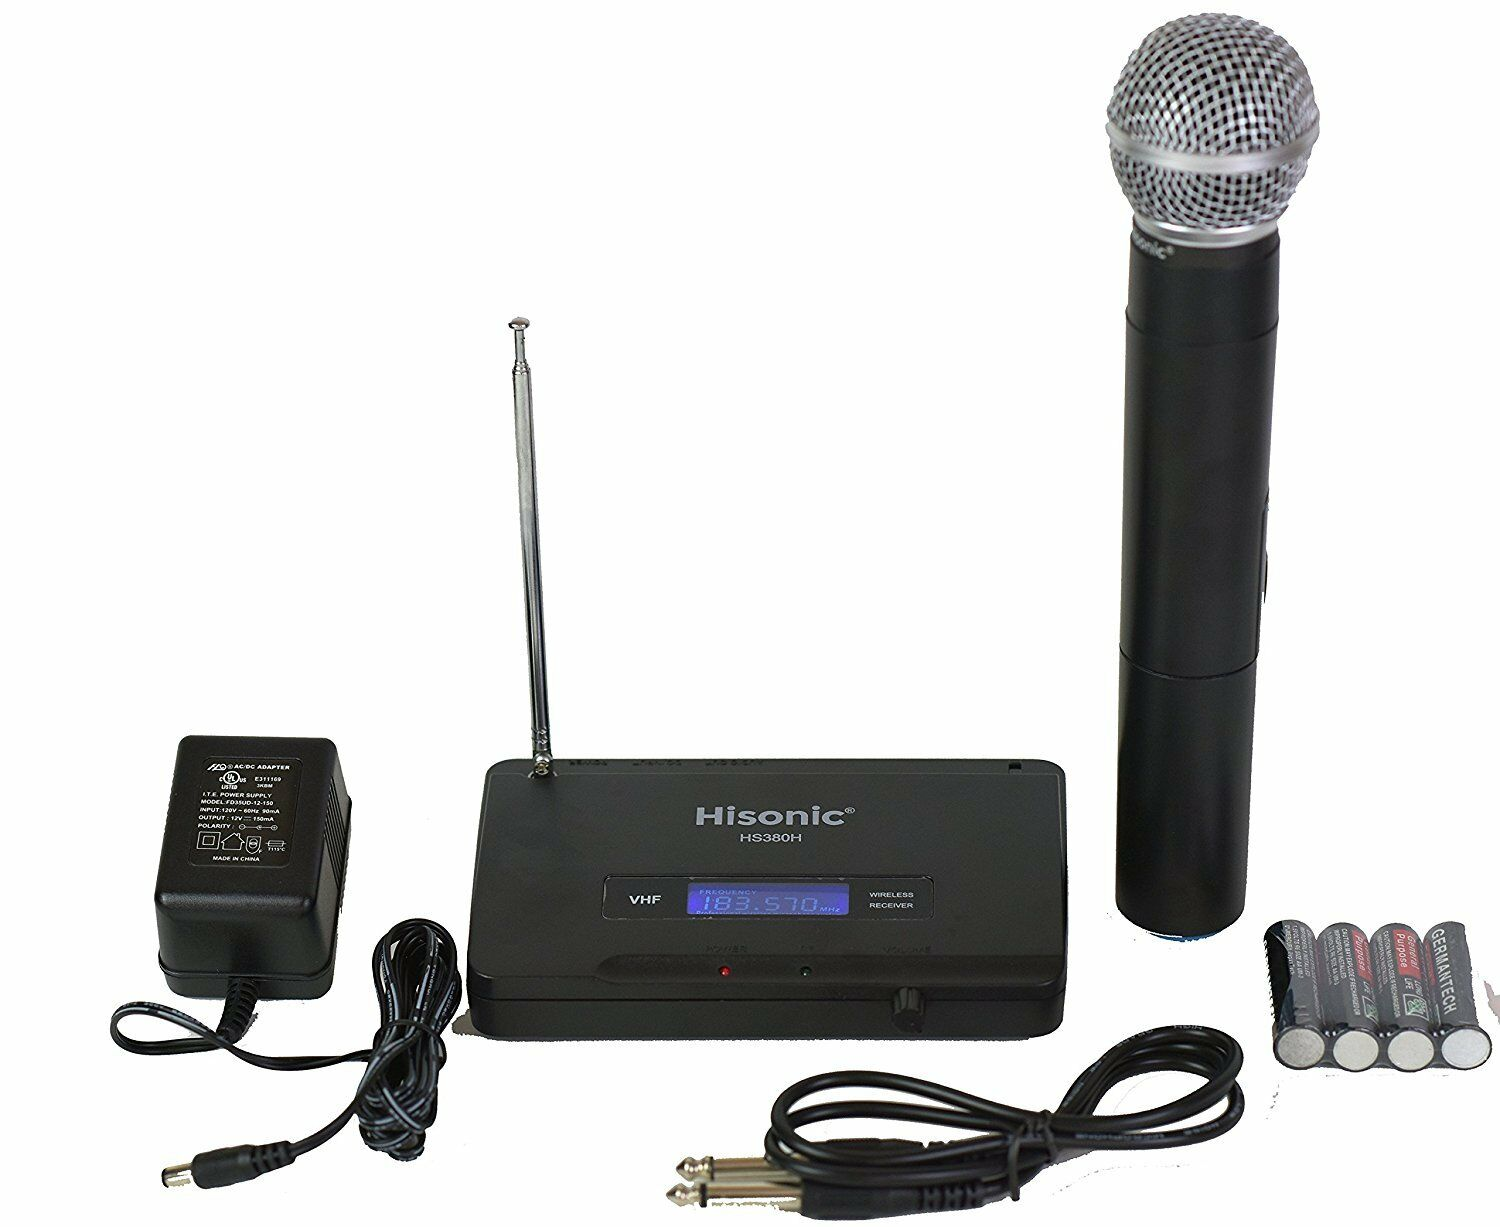 Hisonic HS380H VHF Wireless Handheld Microphone System Porta